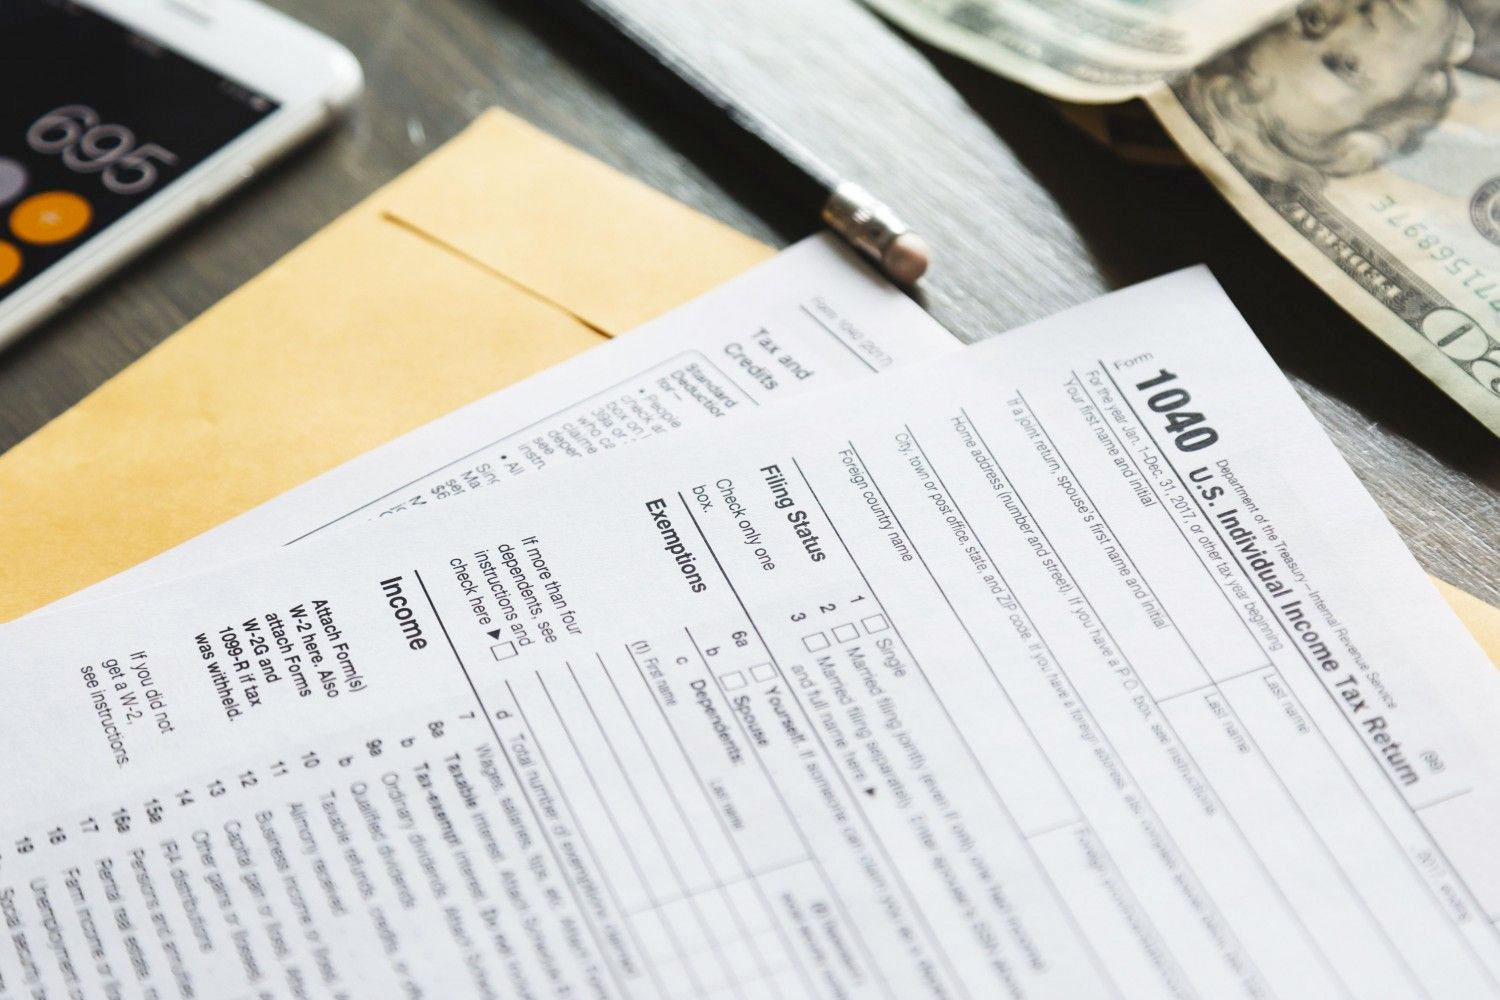 3 Things You Can Do Right Now to Make This Year's Taxes Easier